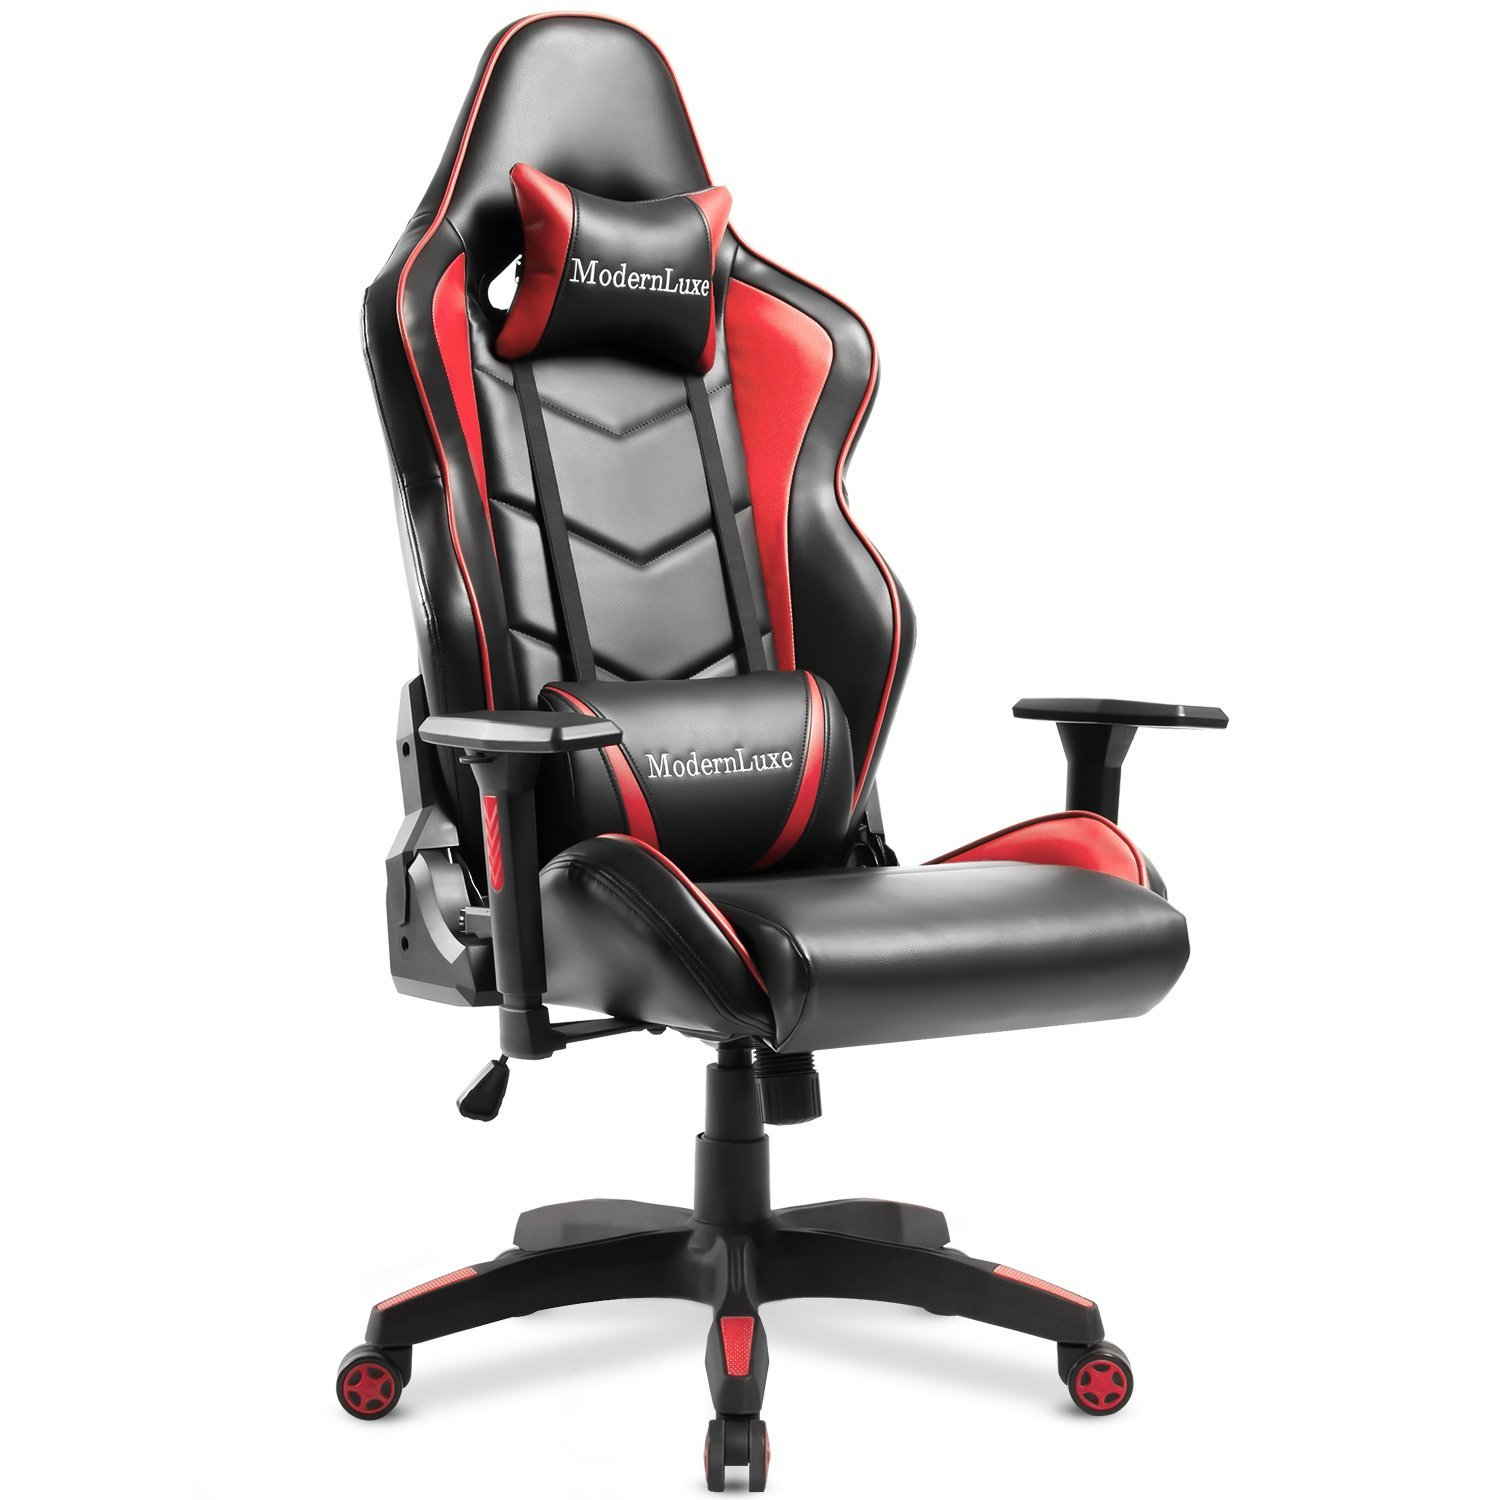 ModernLuxe Gaming Chair High Back Office Chair Racing Style Lumbar Support Ergonomic with Headrest